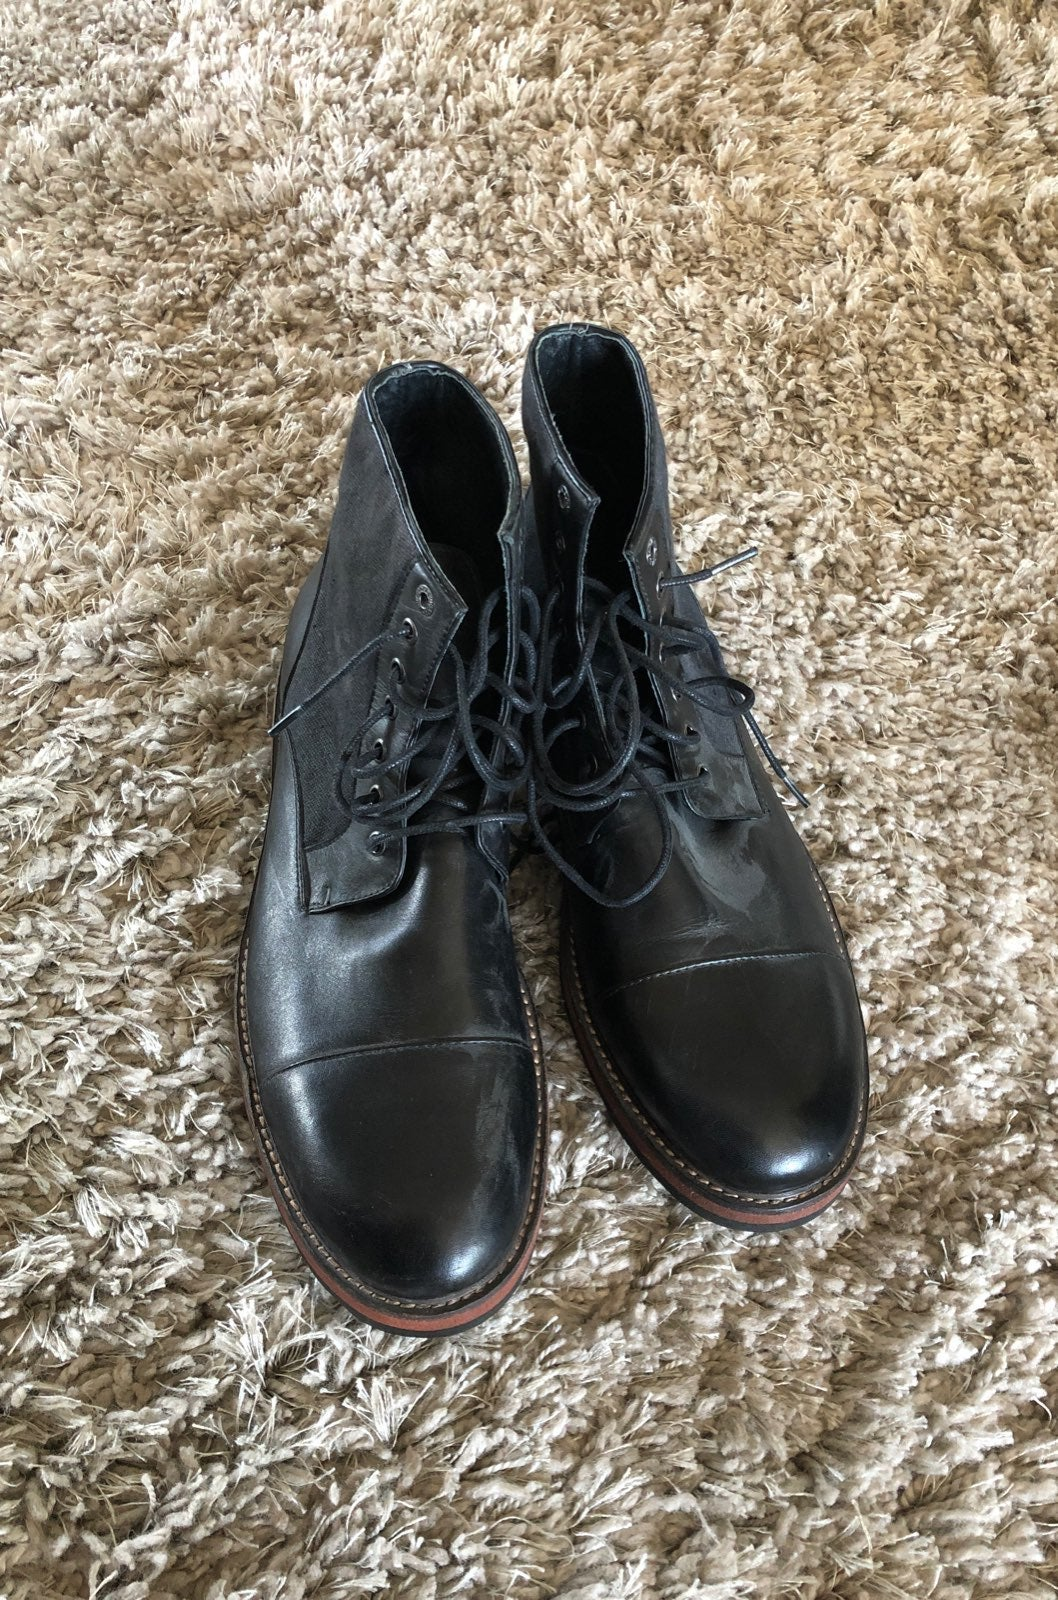 Leather Boots Size 10.5